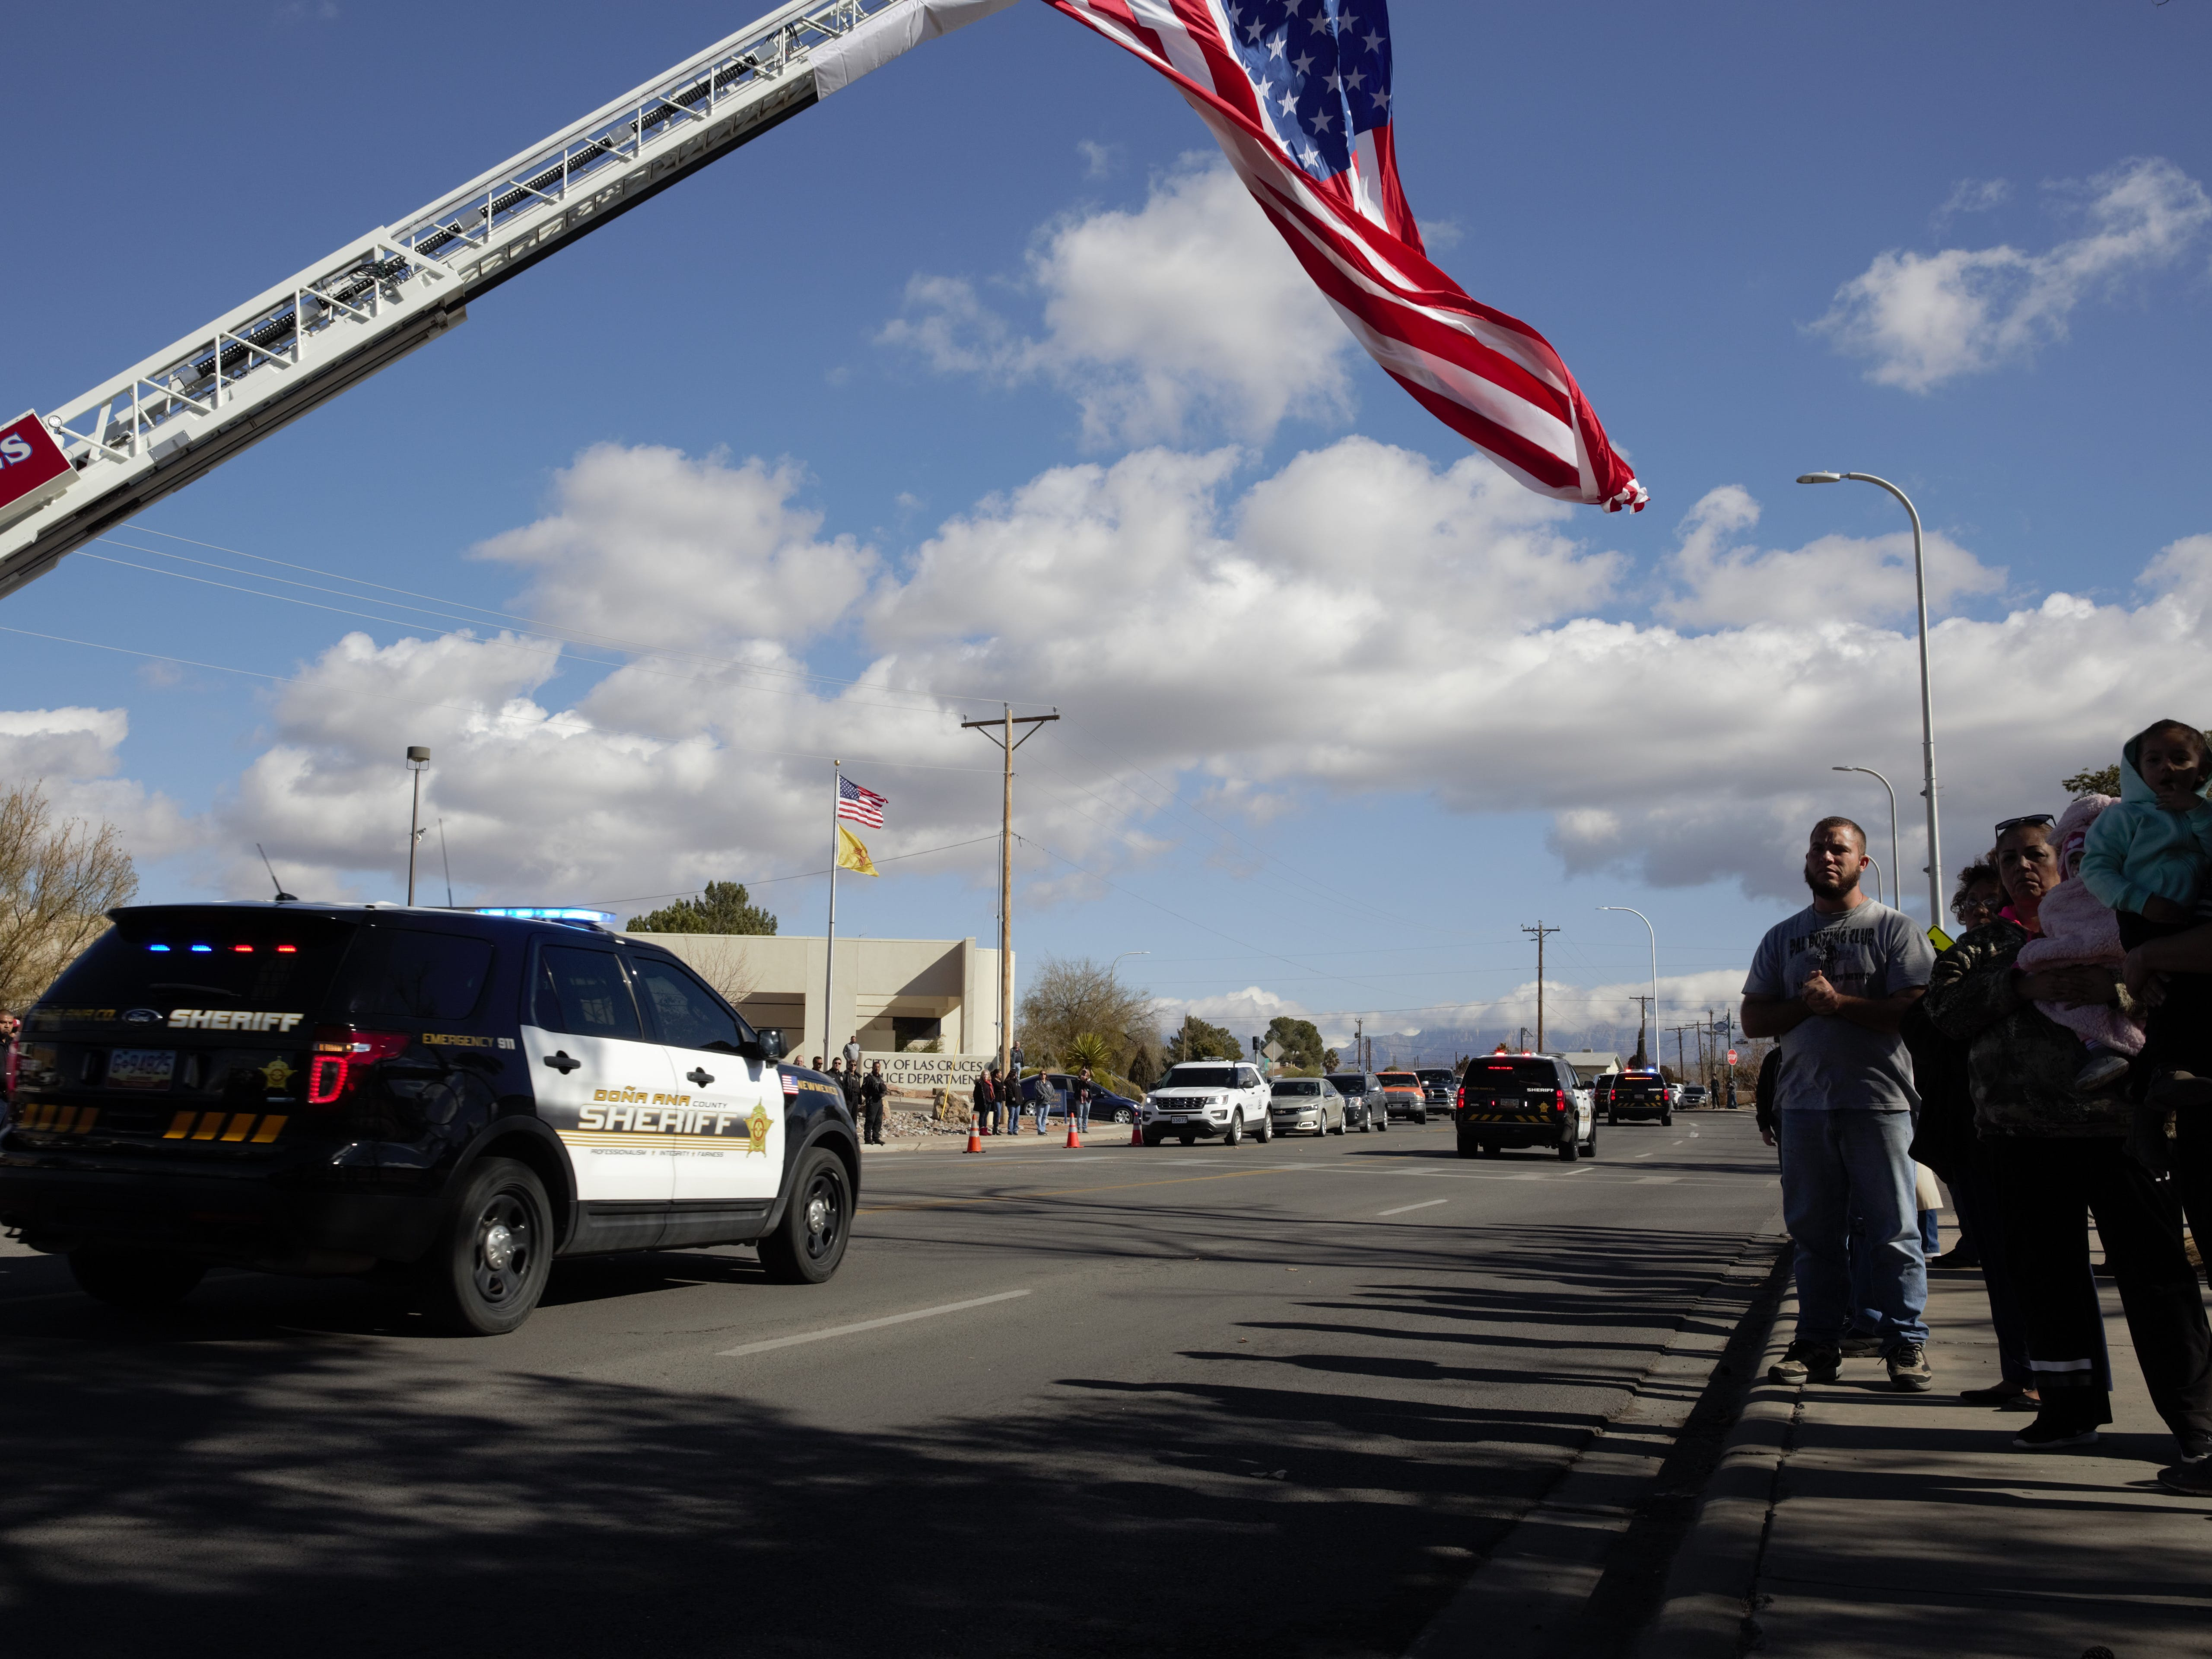 Personnel from a number of area law enforcement agencies, including the county sheriff's department, process east on Picacho Avenue underneath a giant flag hung to honor retired Las Cruces Police Department Chief Jaime Montoya, who died recently from cancer. The funeral and procession took place Friday, Jan. 11, 2019.